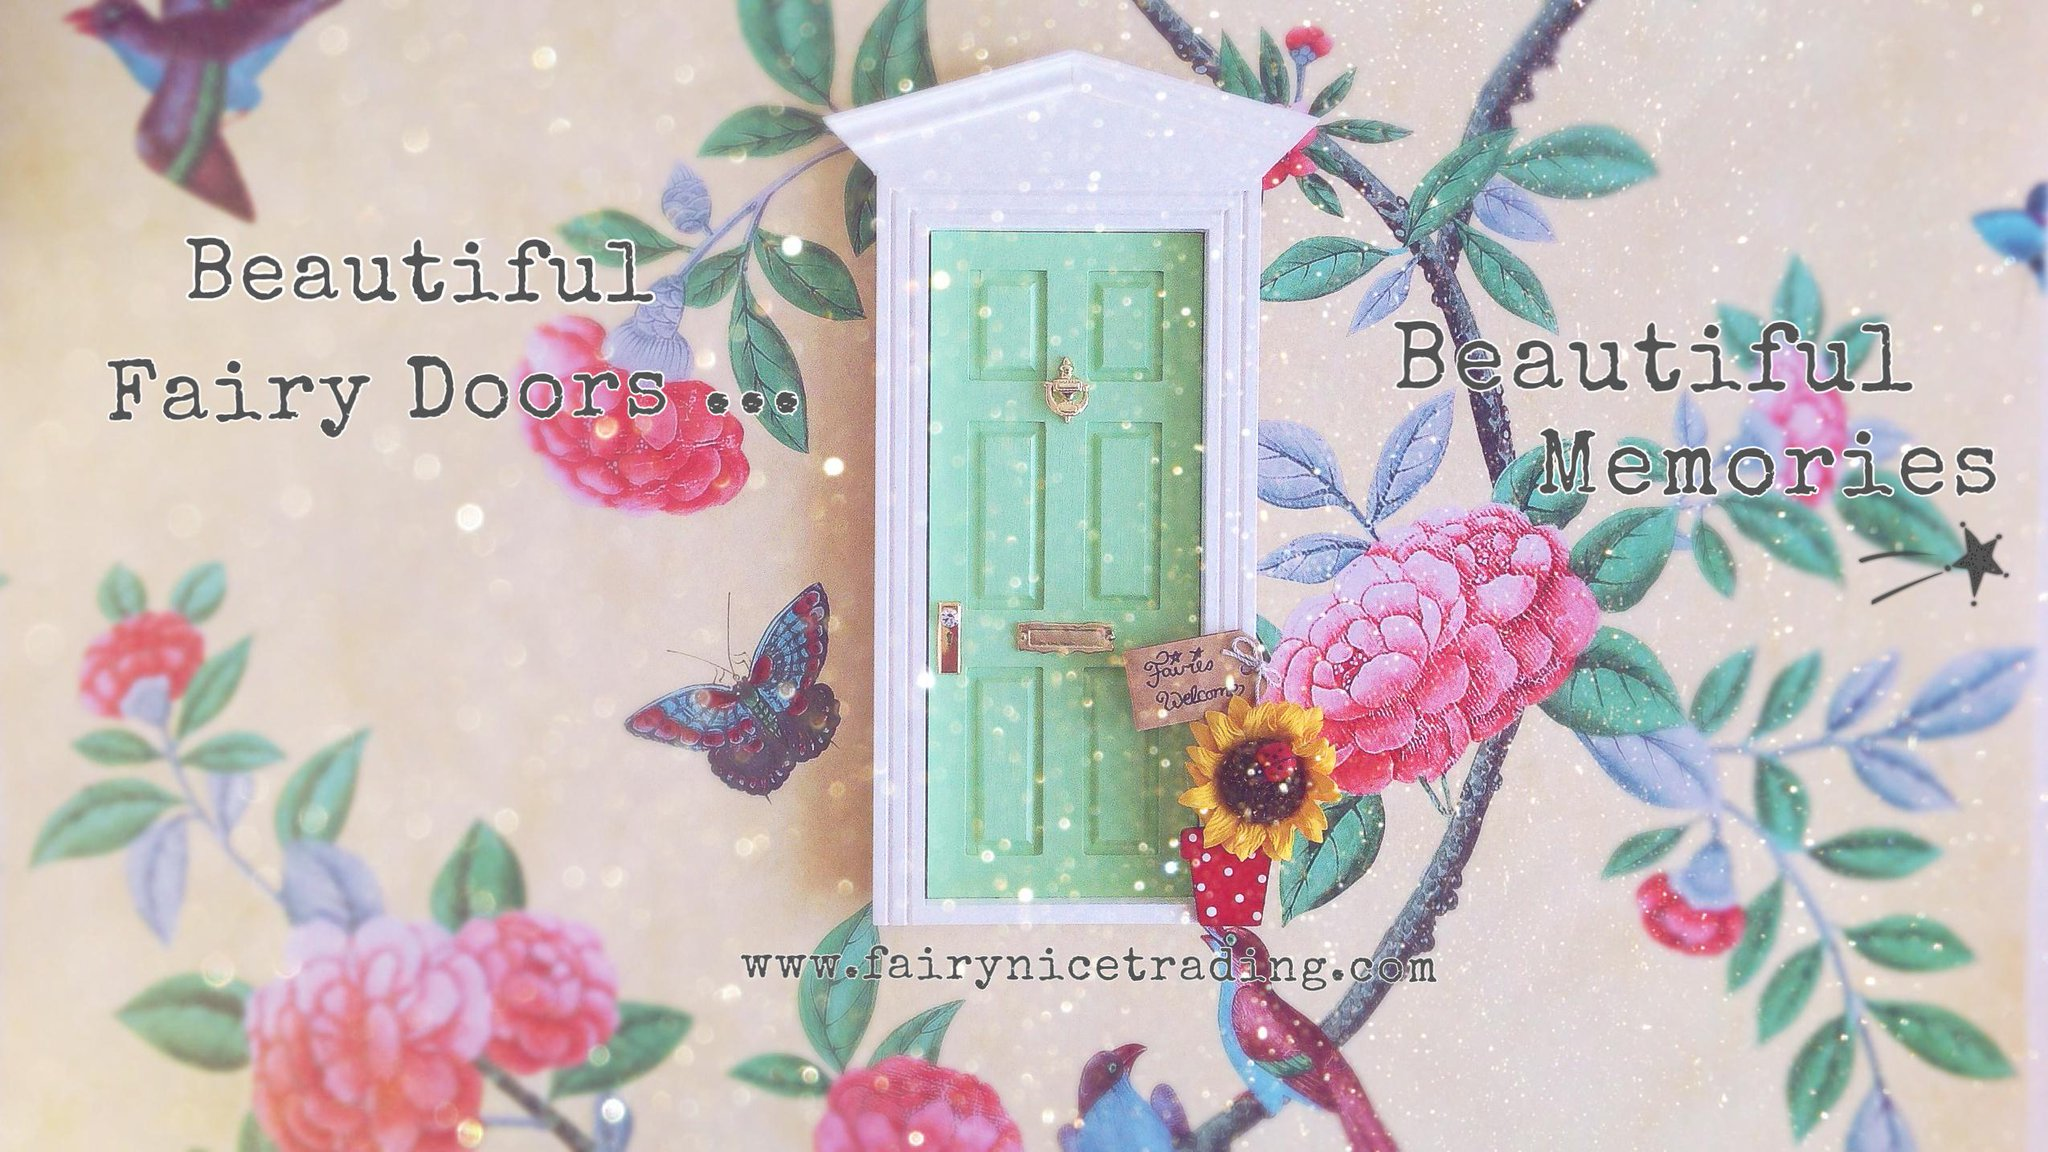 Step through our Fairy Doors into your little one's imagination and create some magical memories together http://t.co/UOeQz49GJR